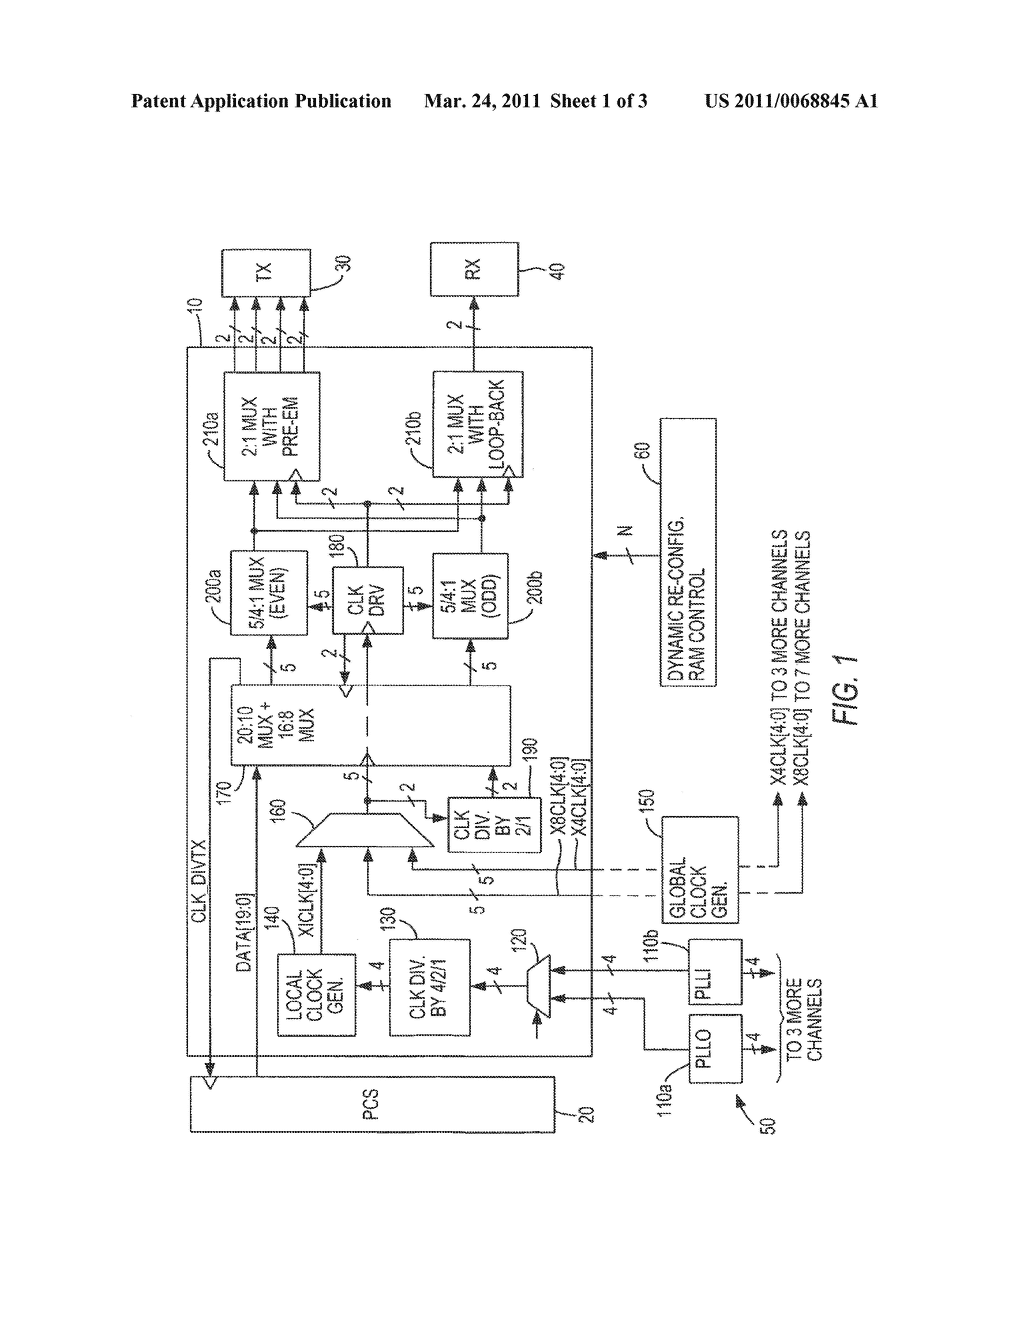 Serializer Circuitry For High Speed Serial Data Transmitters On Circuit Diagram Of 4 1 Multiplexer Programmable Logic Device Integrated Circuits Schematic And Image 02